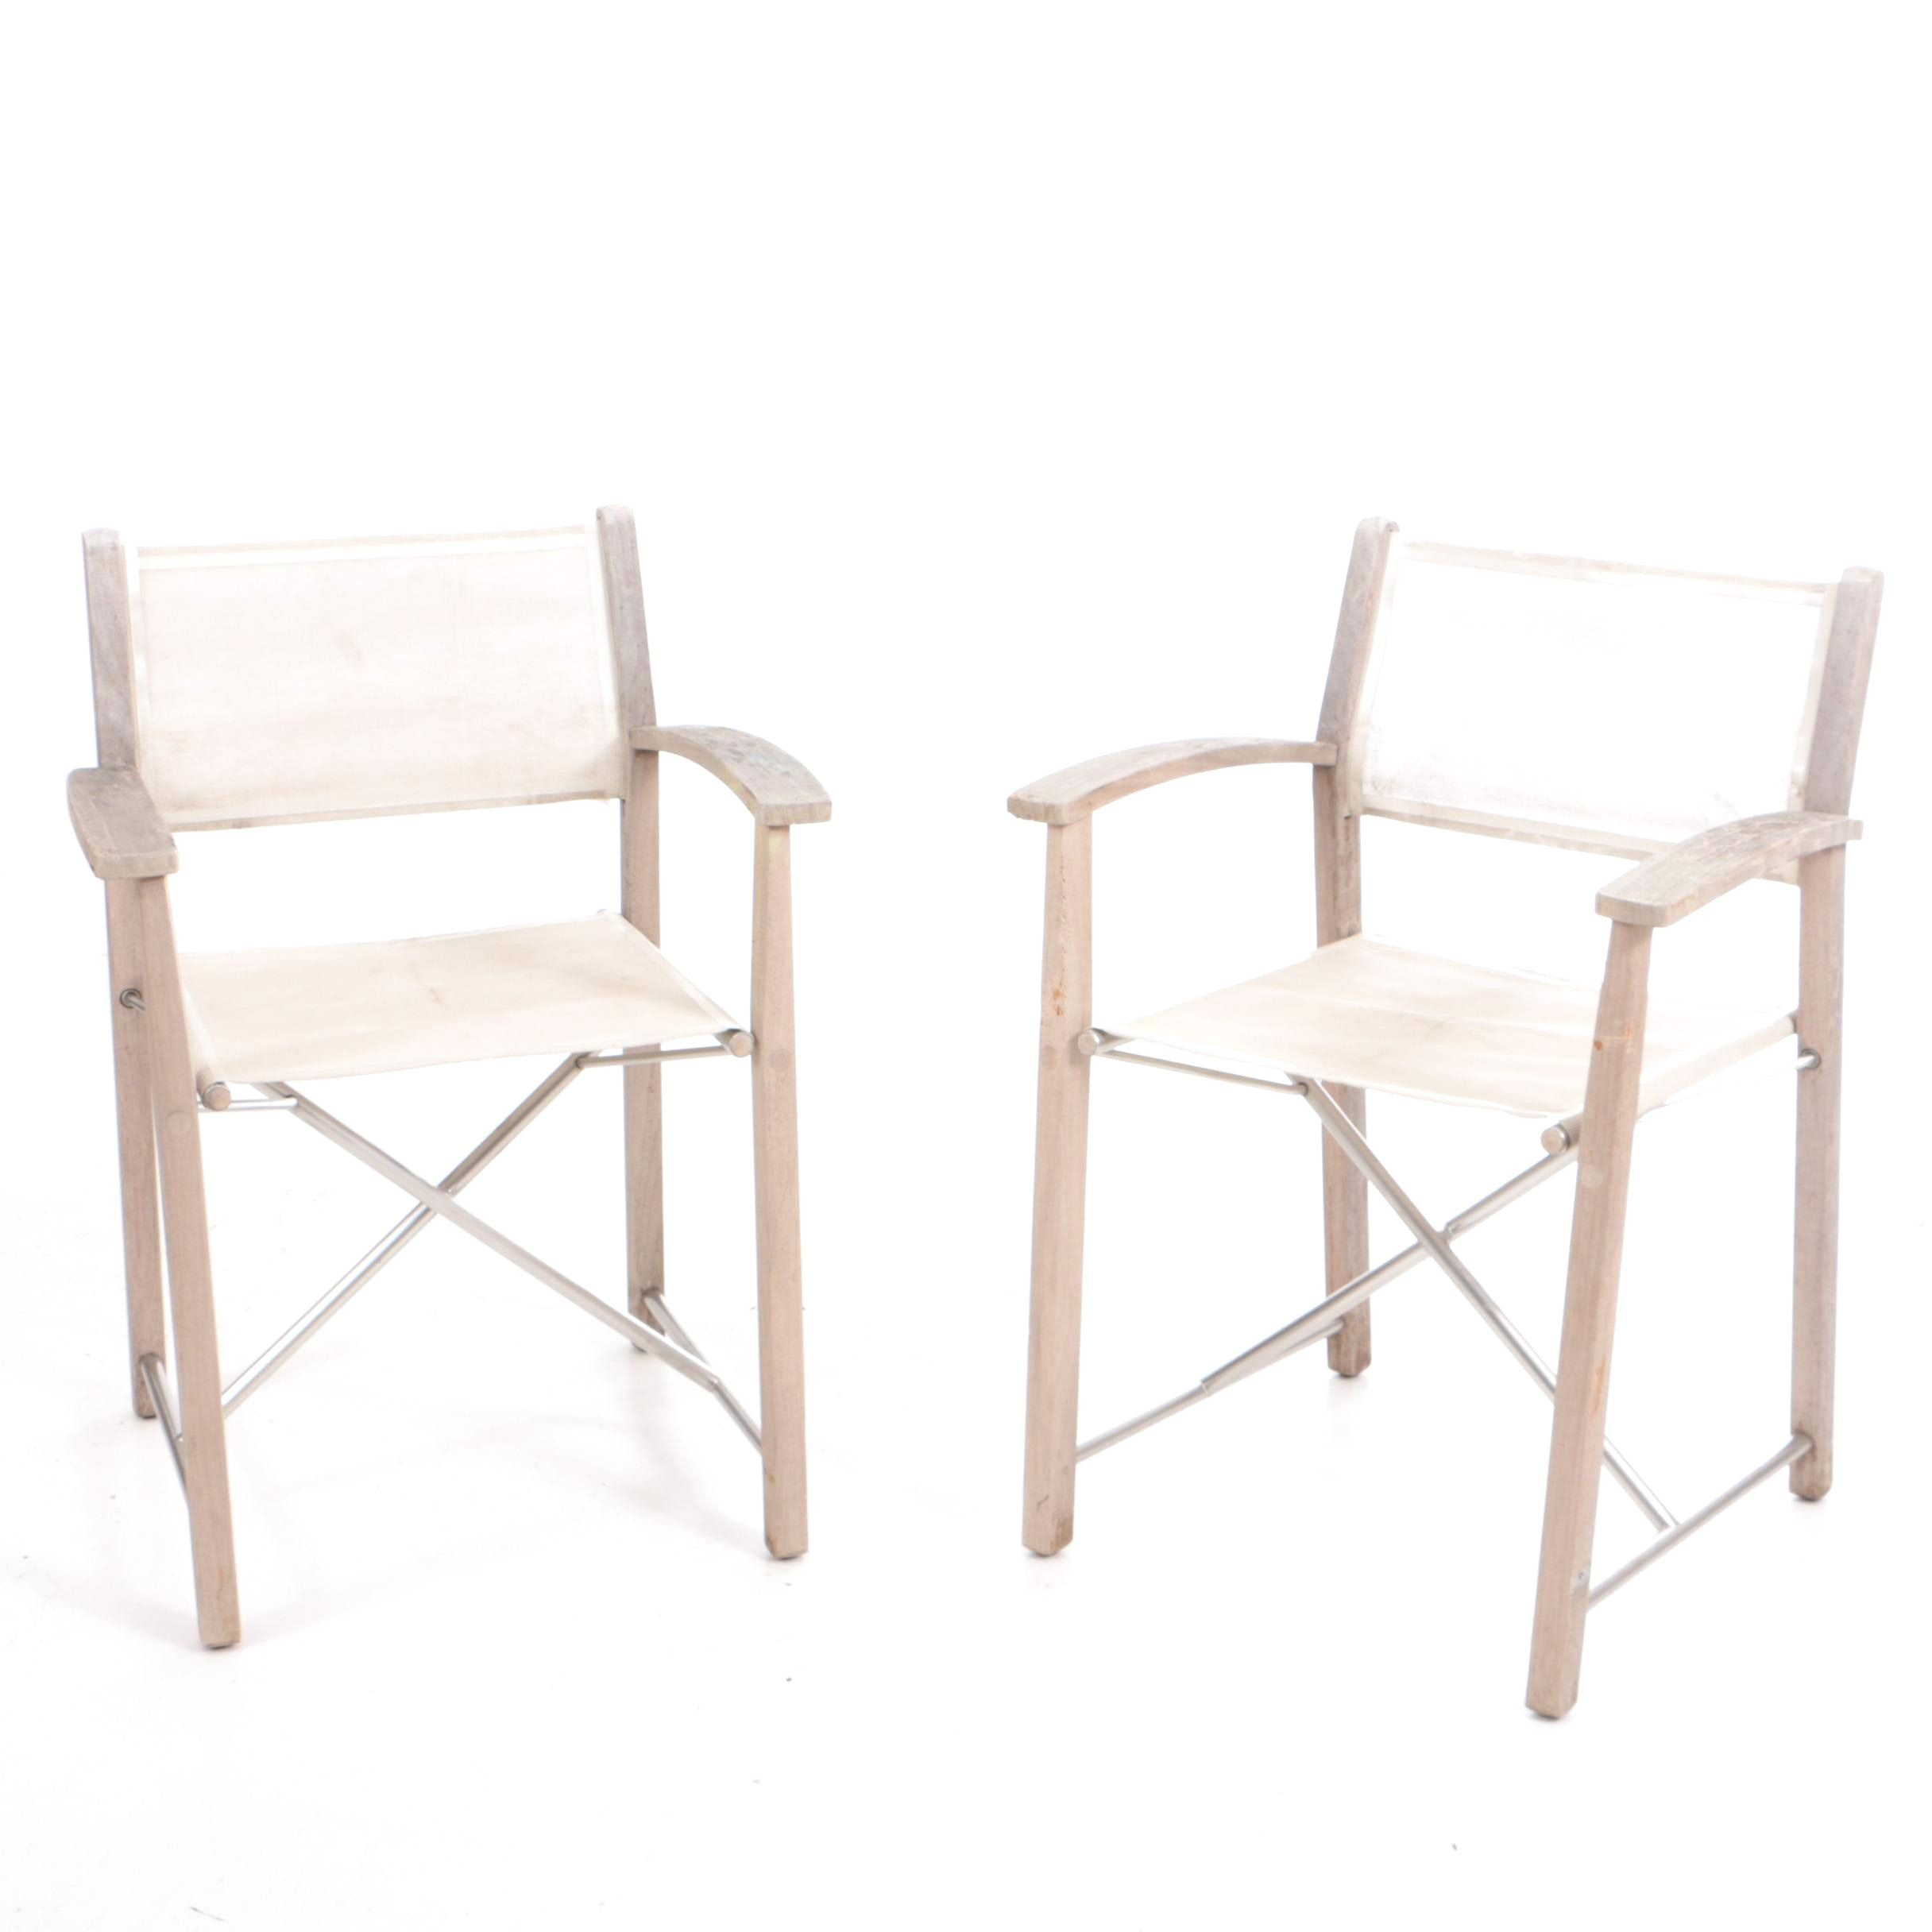 Pair of Gloster Teak Folding Chairs with Off White Mesh Sling Seats